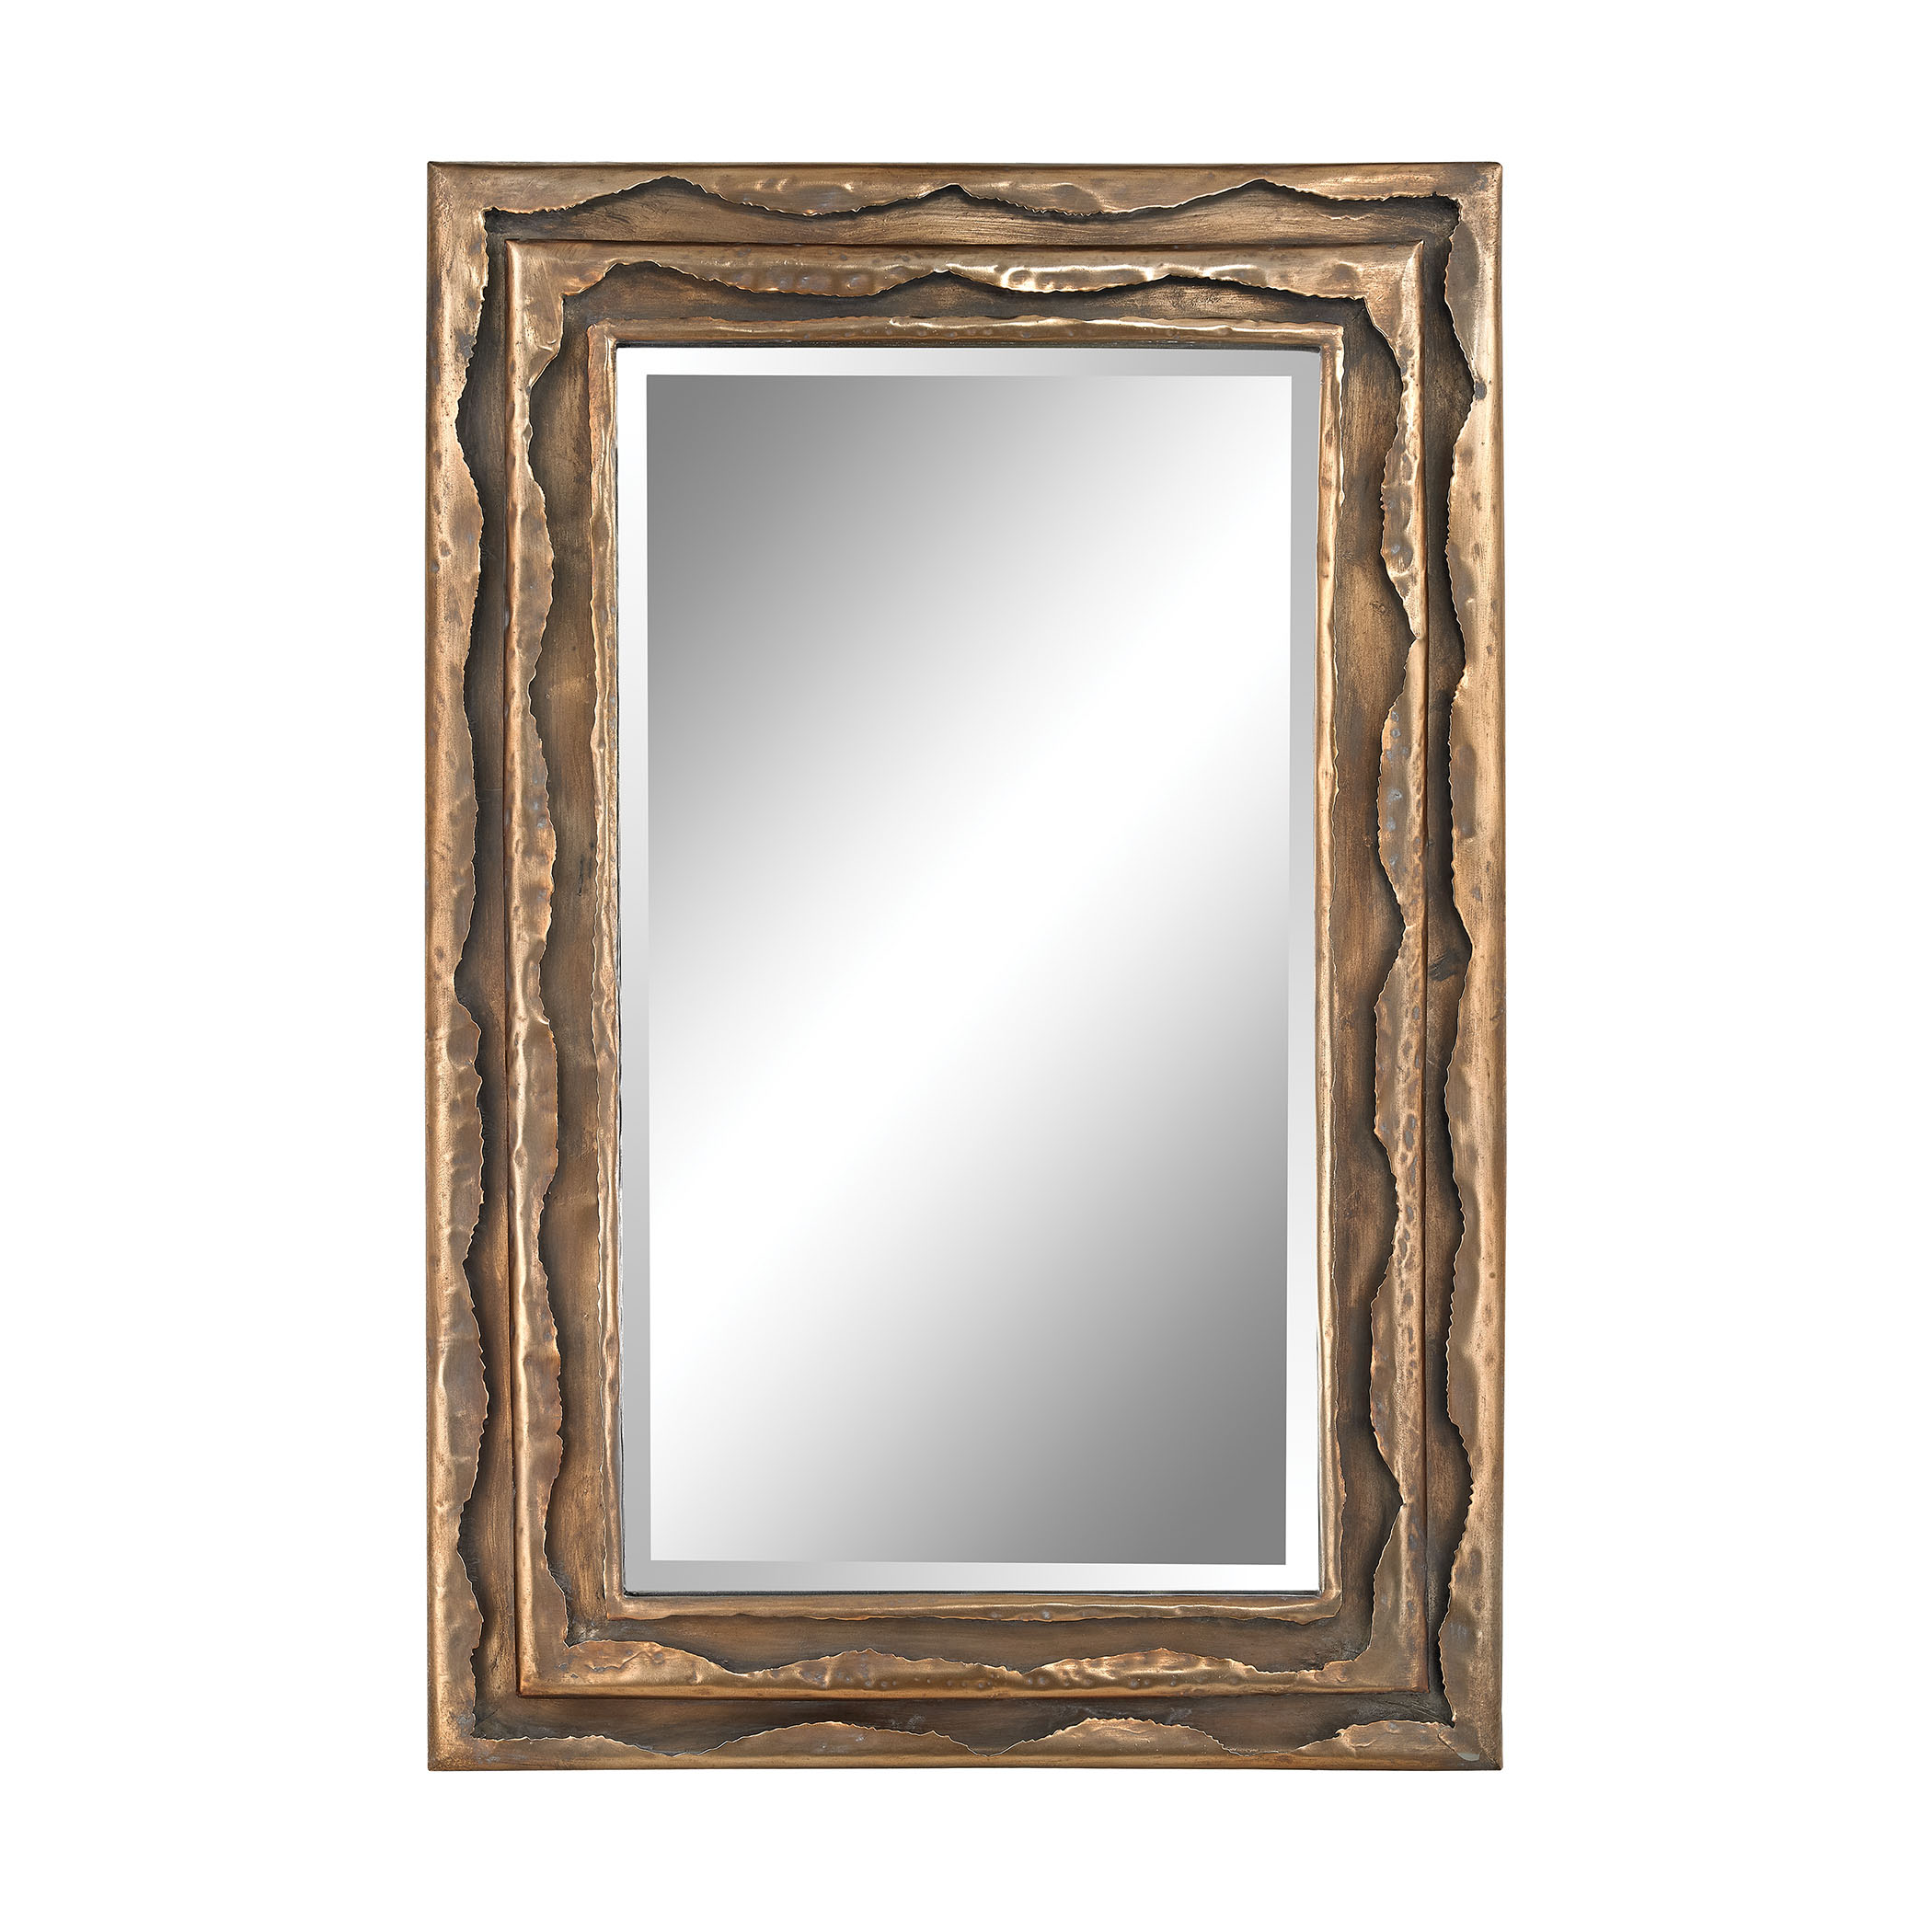 Guild Master Thierry Mirror 2100-010